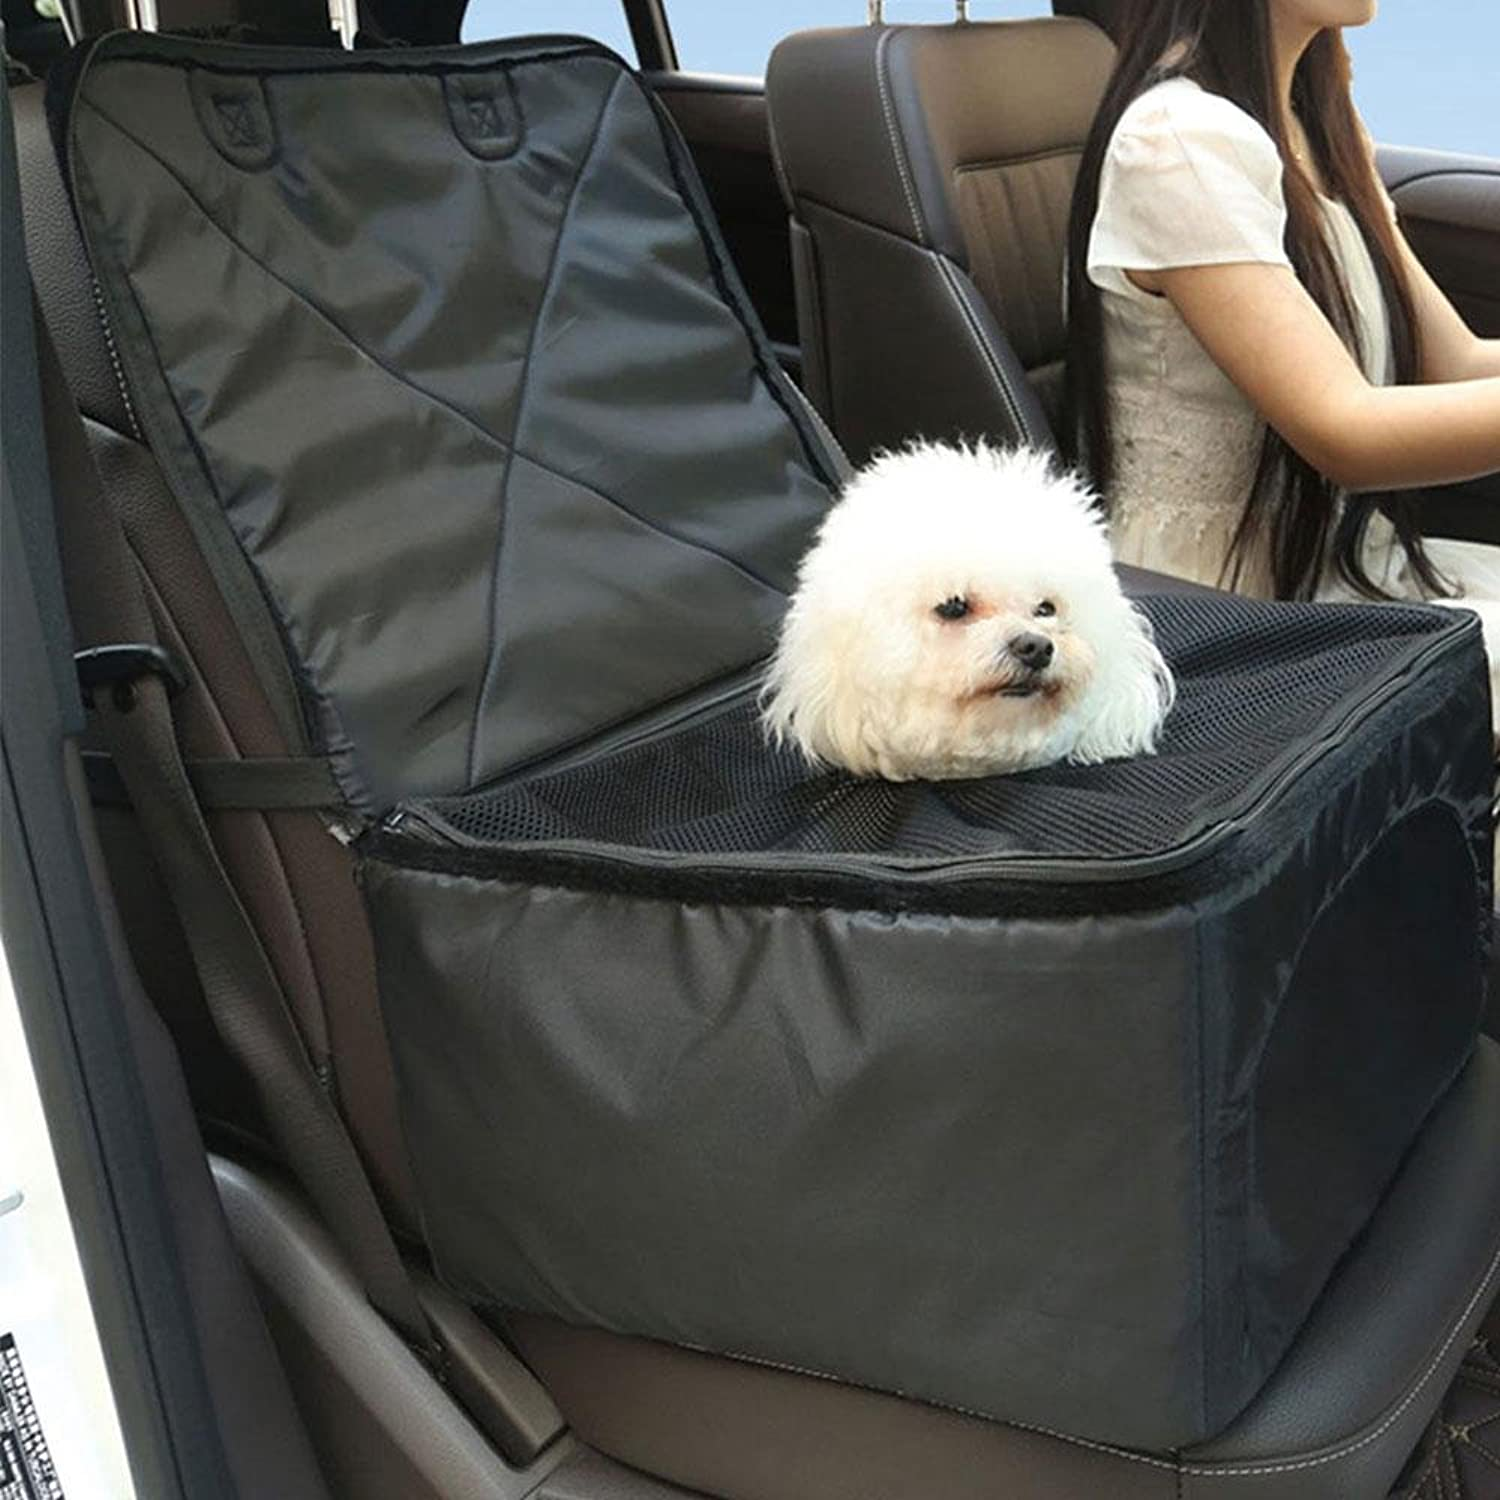 Pet Front Seat Cover,Leegoal Portable Pet Dog Booster Car Seat with ClipOn Safety Leash and Zipper Storage Pocket, Perfect for Small and Medium Pets